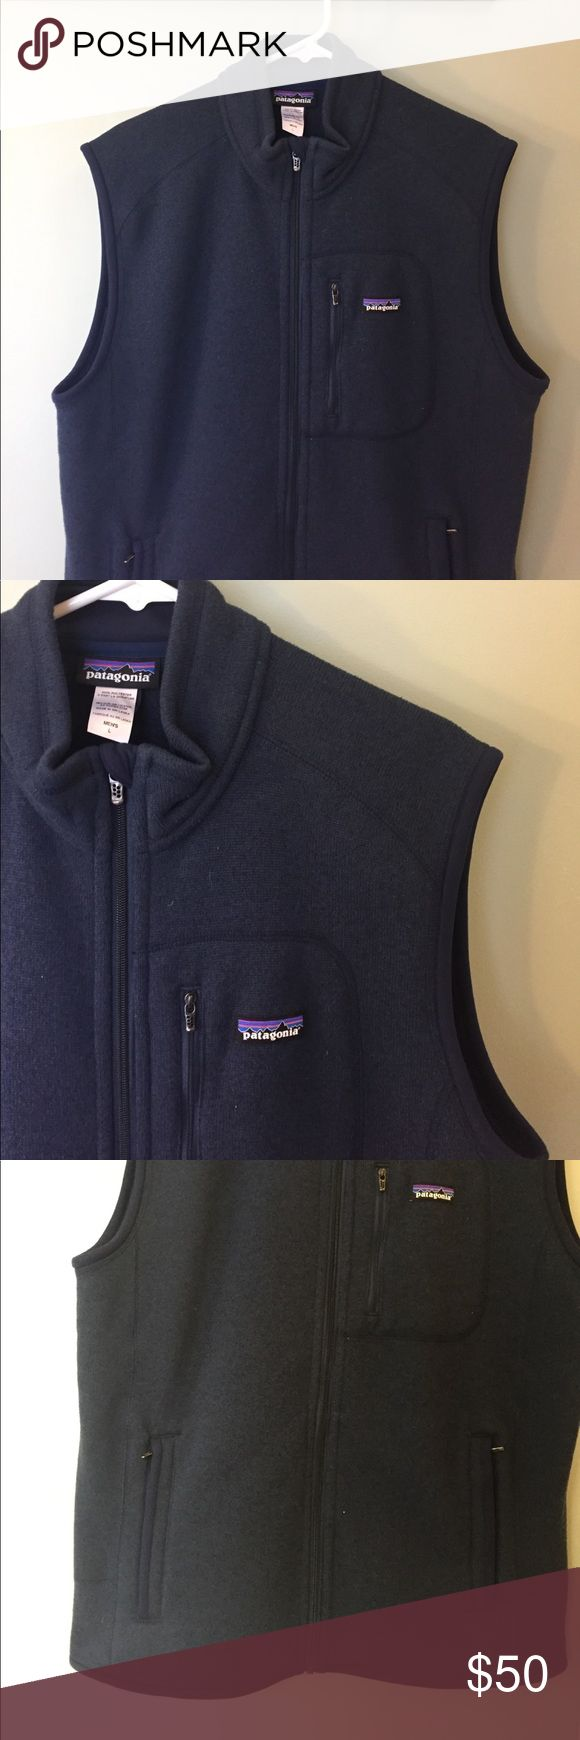 Patagonia // men's vest Men's Patagonia vest in pretty much new condition. Only been worn a handful of times!! I believe this is the Better Sweater vest (it's the same material as the better sweater). Offers welcome! Patagonia Jackets & Coats Vests